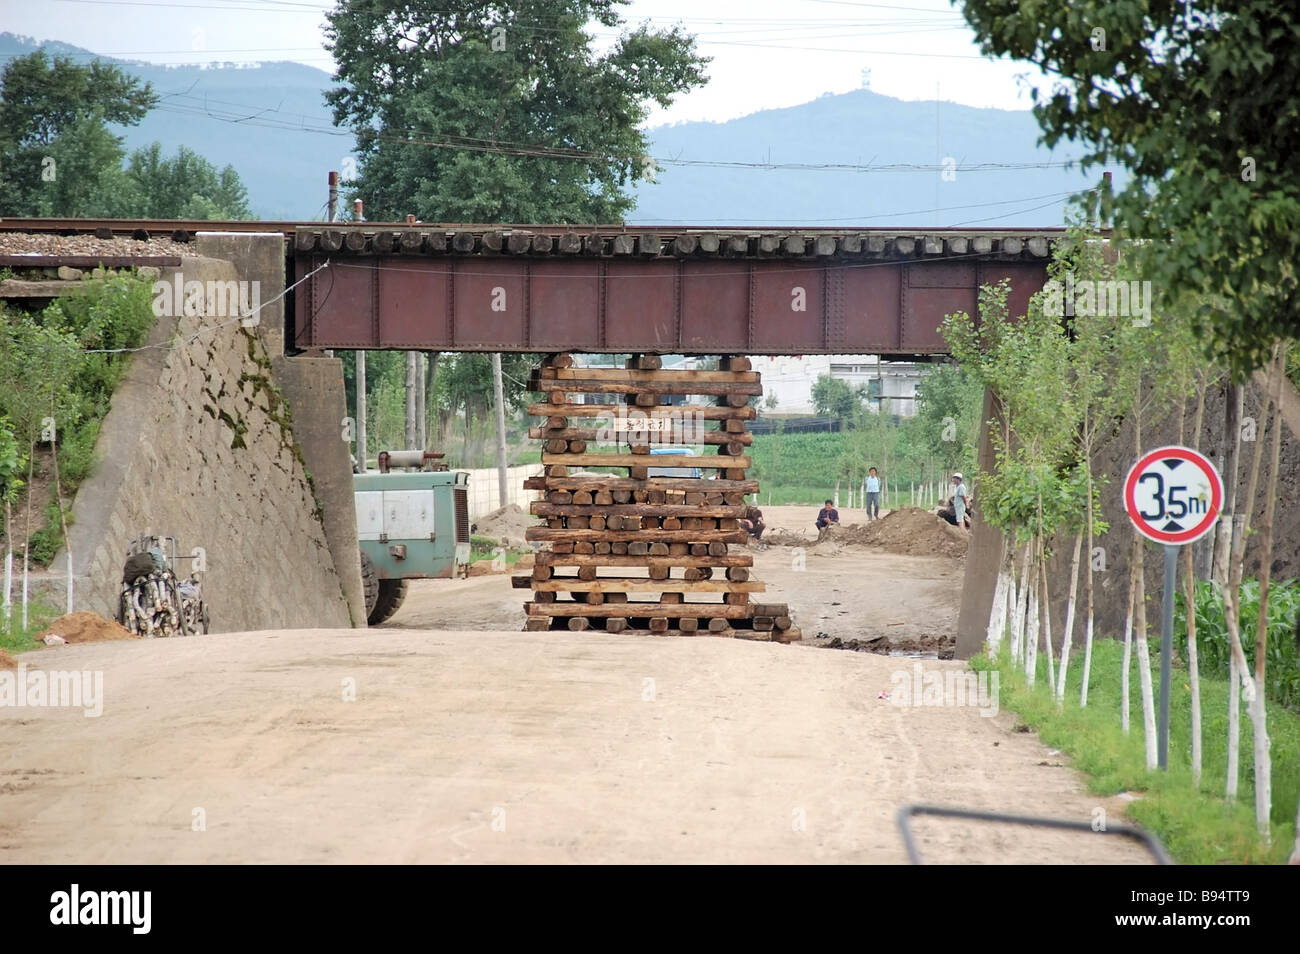 Railway bridge with a temporary support for maintaining its bearing capacity at one of the Tumangan Najin strips - Stock Image